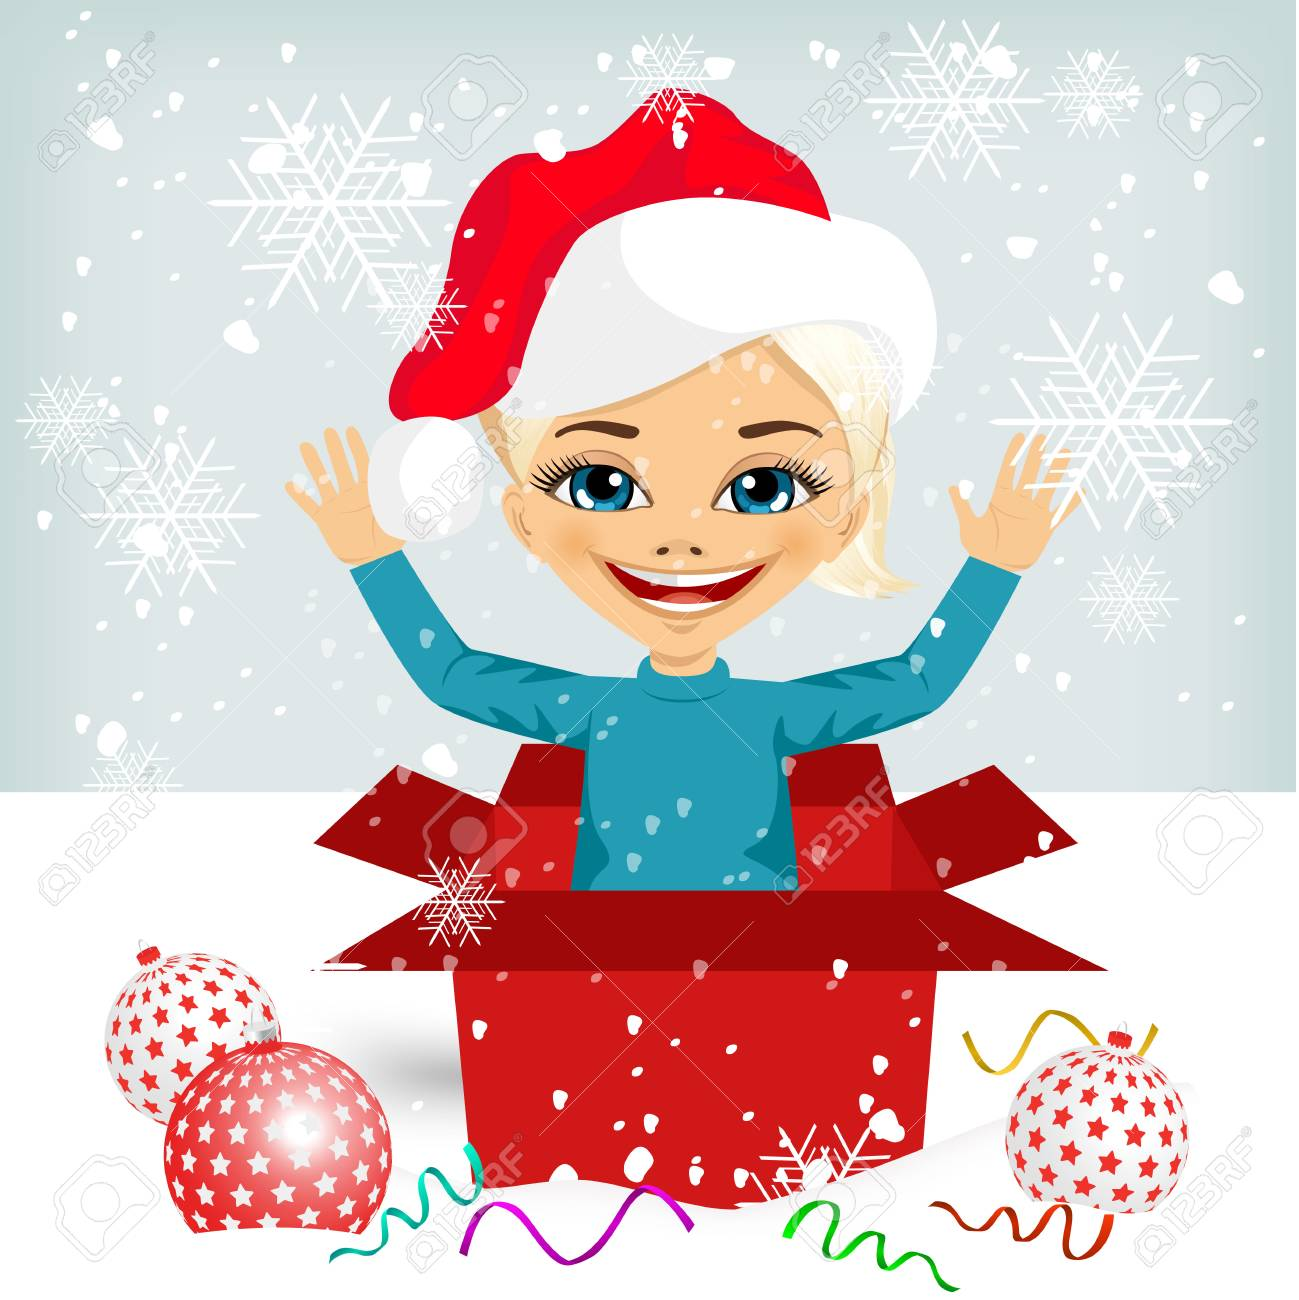 350340a6a632 cute little girl wearing christmas hat coming out of inside christmas red  gift box Stock Vector